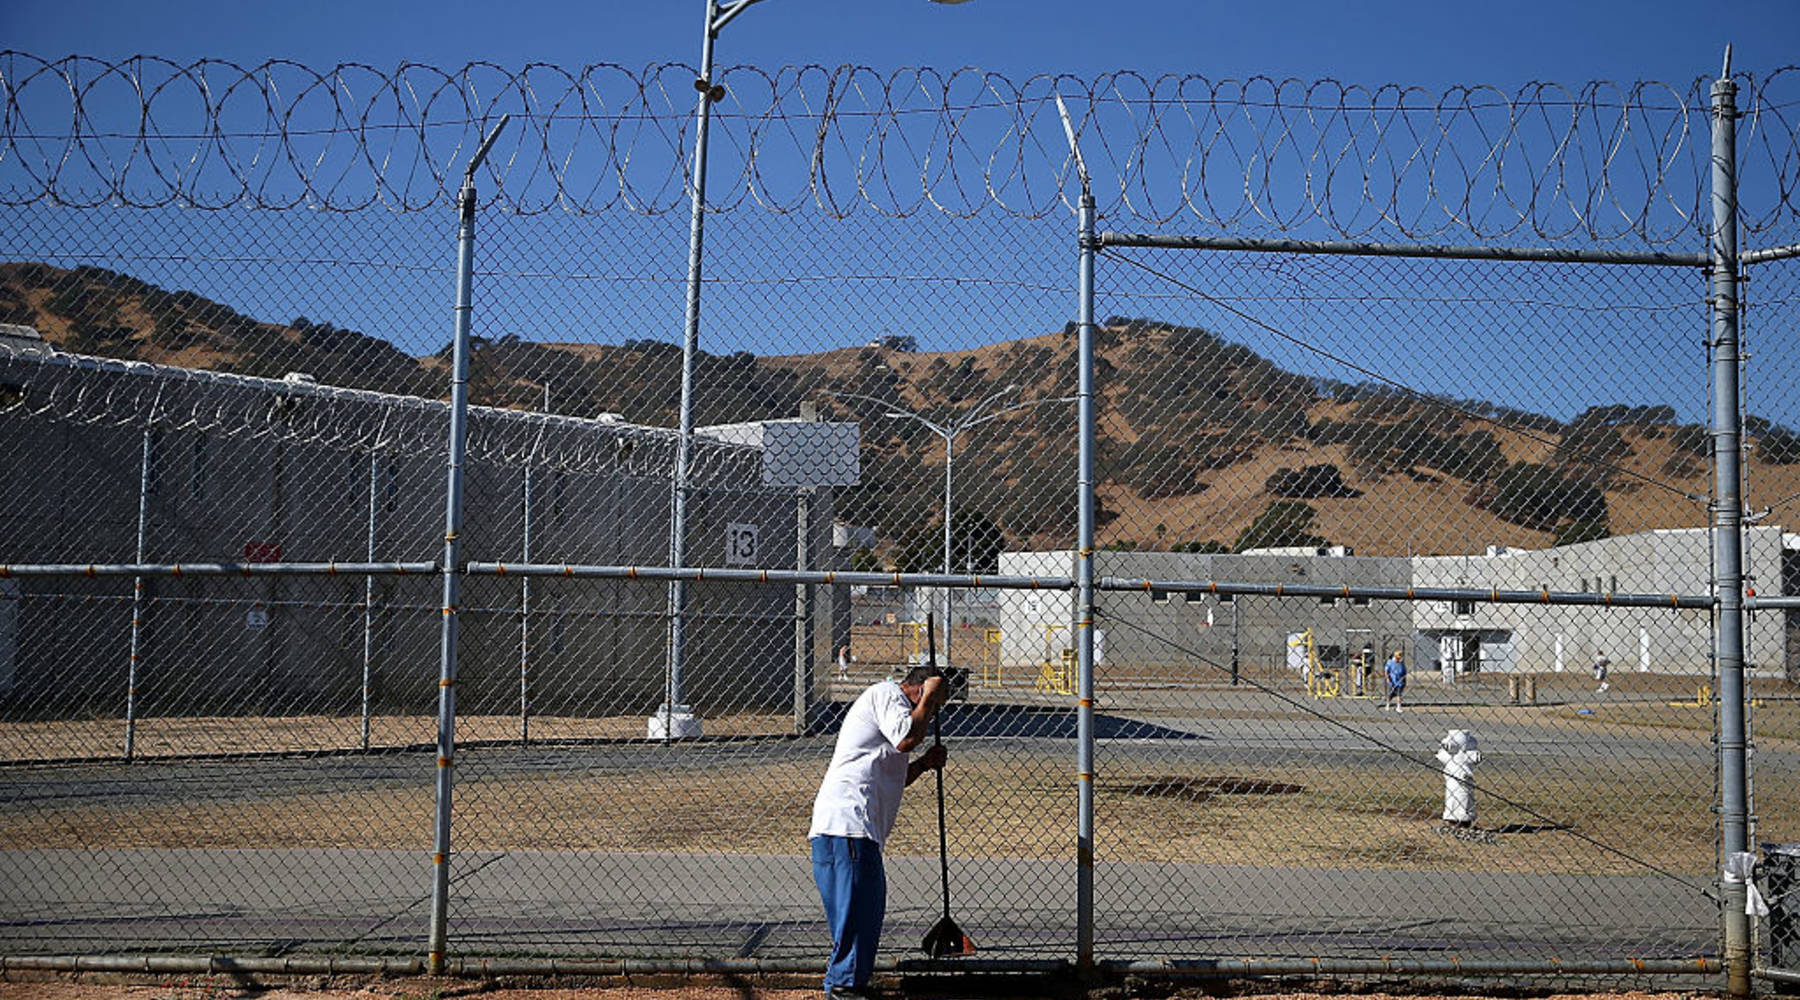 When in prison, the costs are steep and the pay is close to